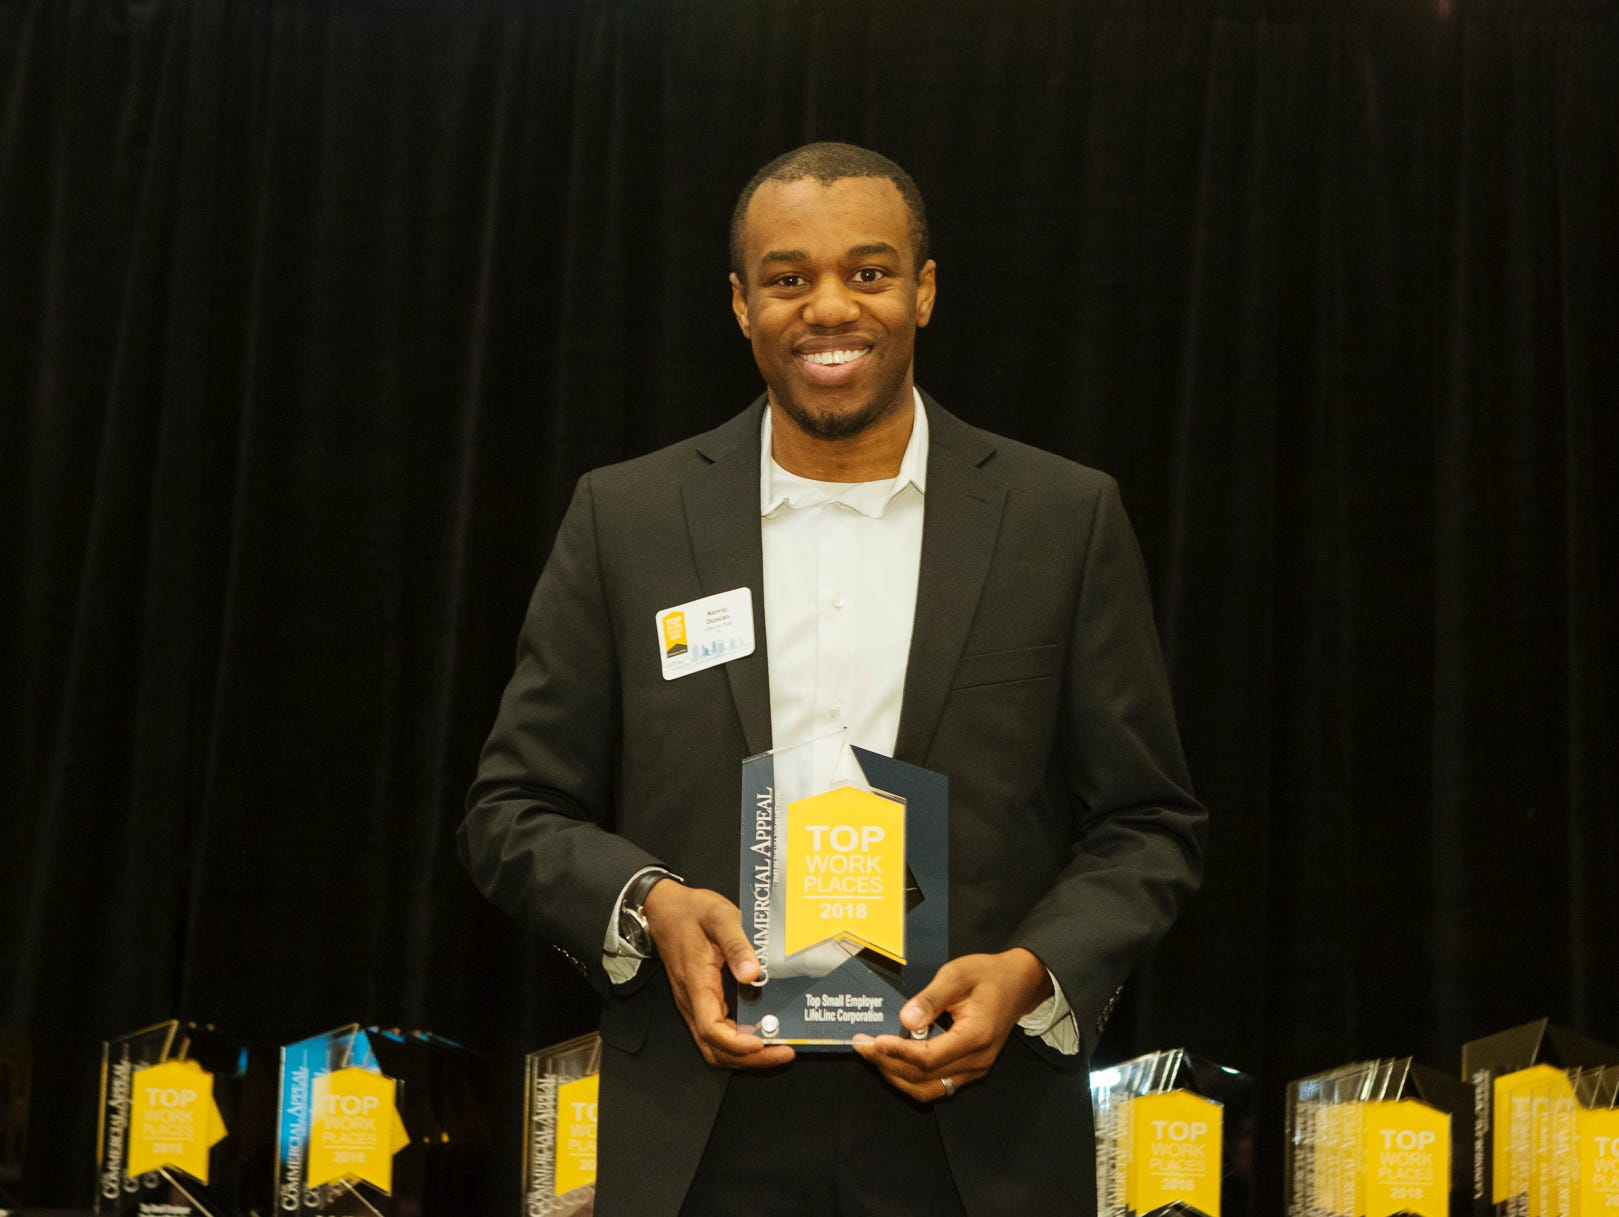 Kenric Duncan, with LifeLinc Corporation, a Top Small Employer.